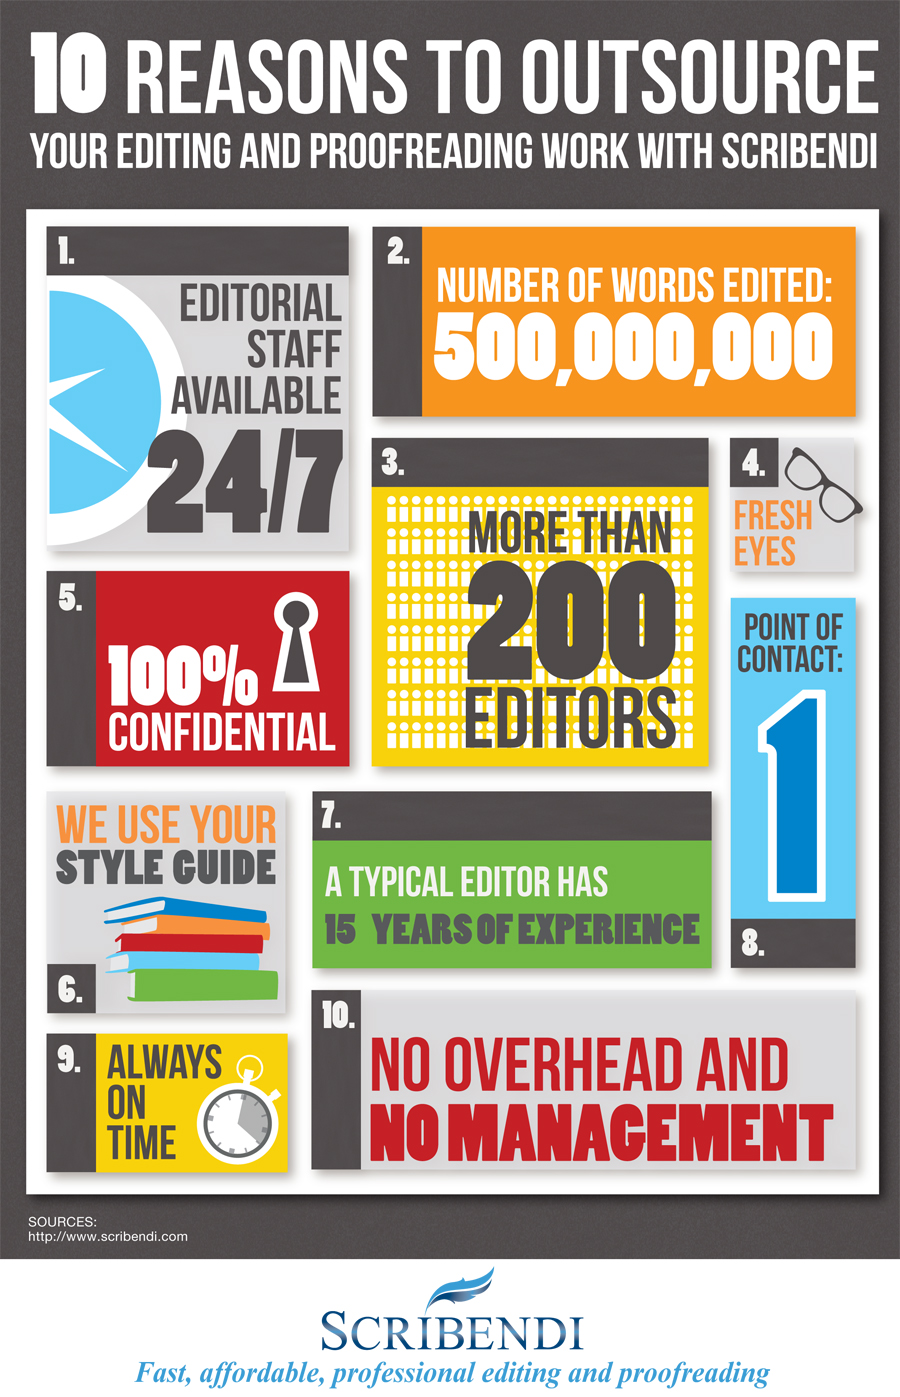 English In Italian: 10 Reasons To Outsource Your Editing And Proofreading Work